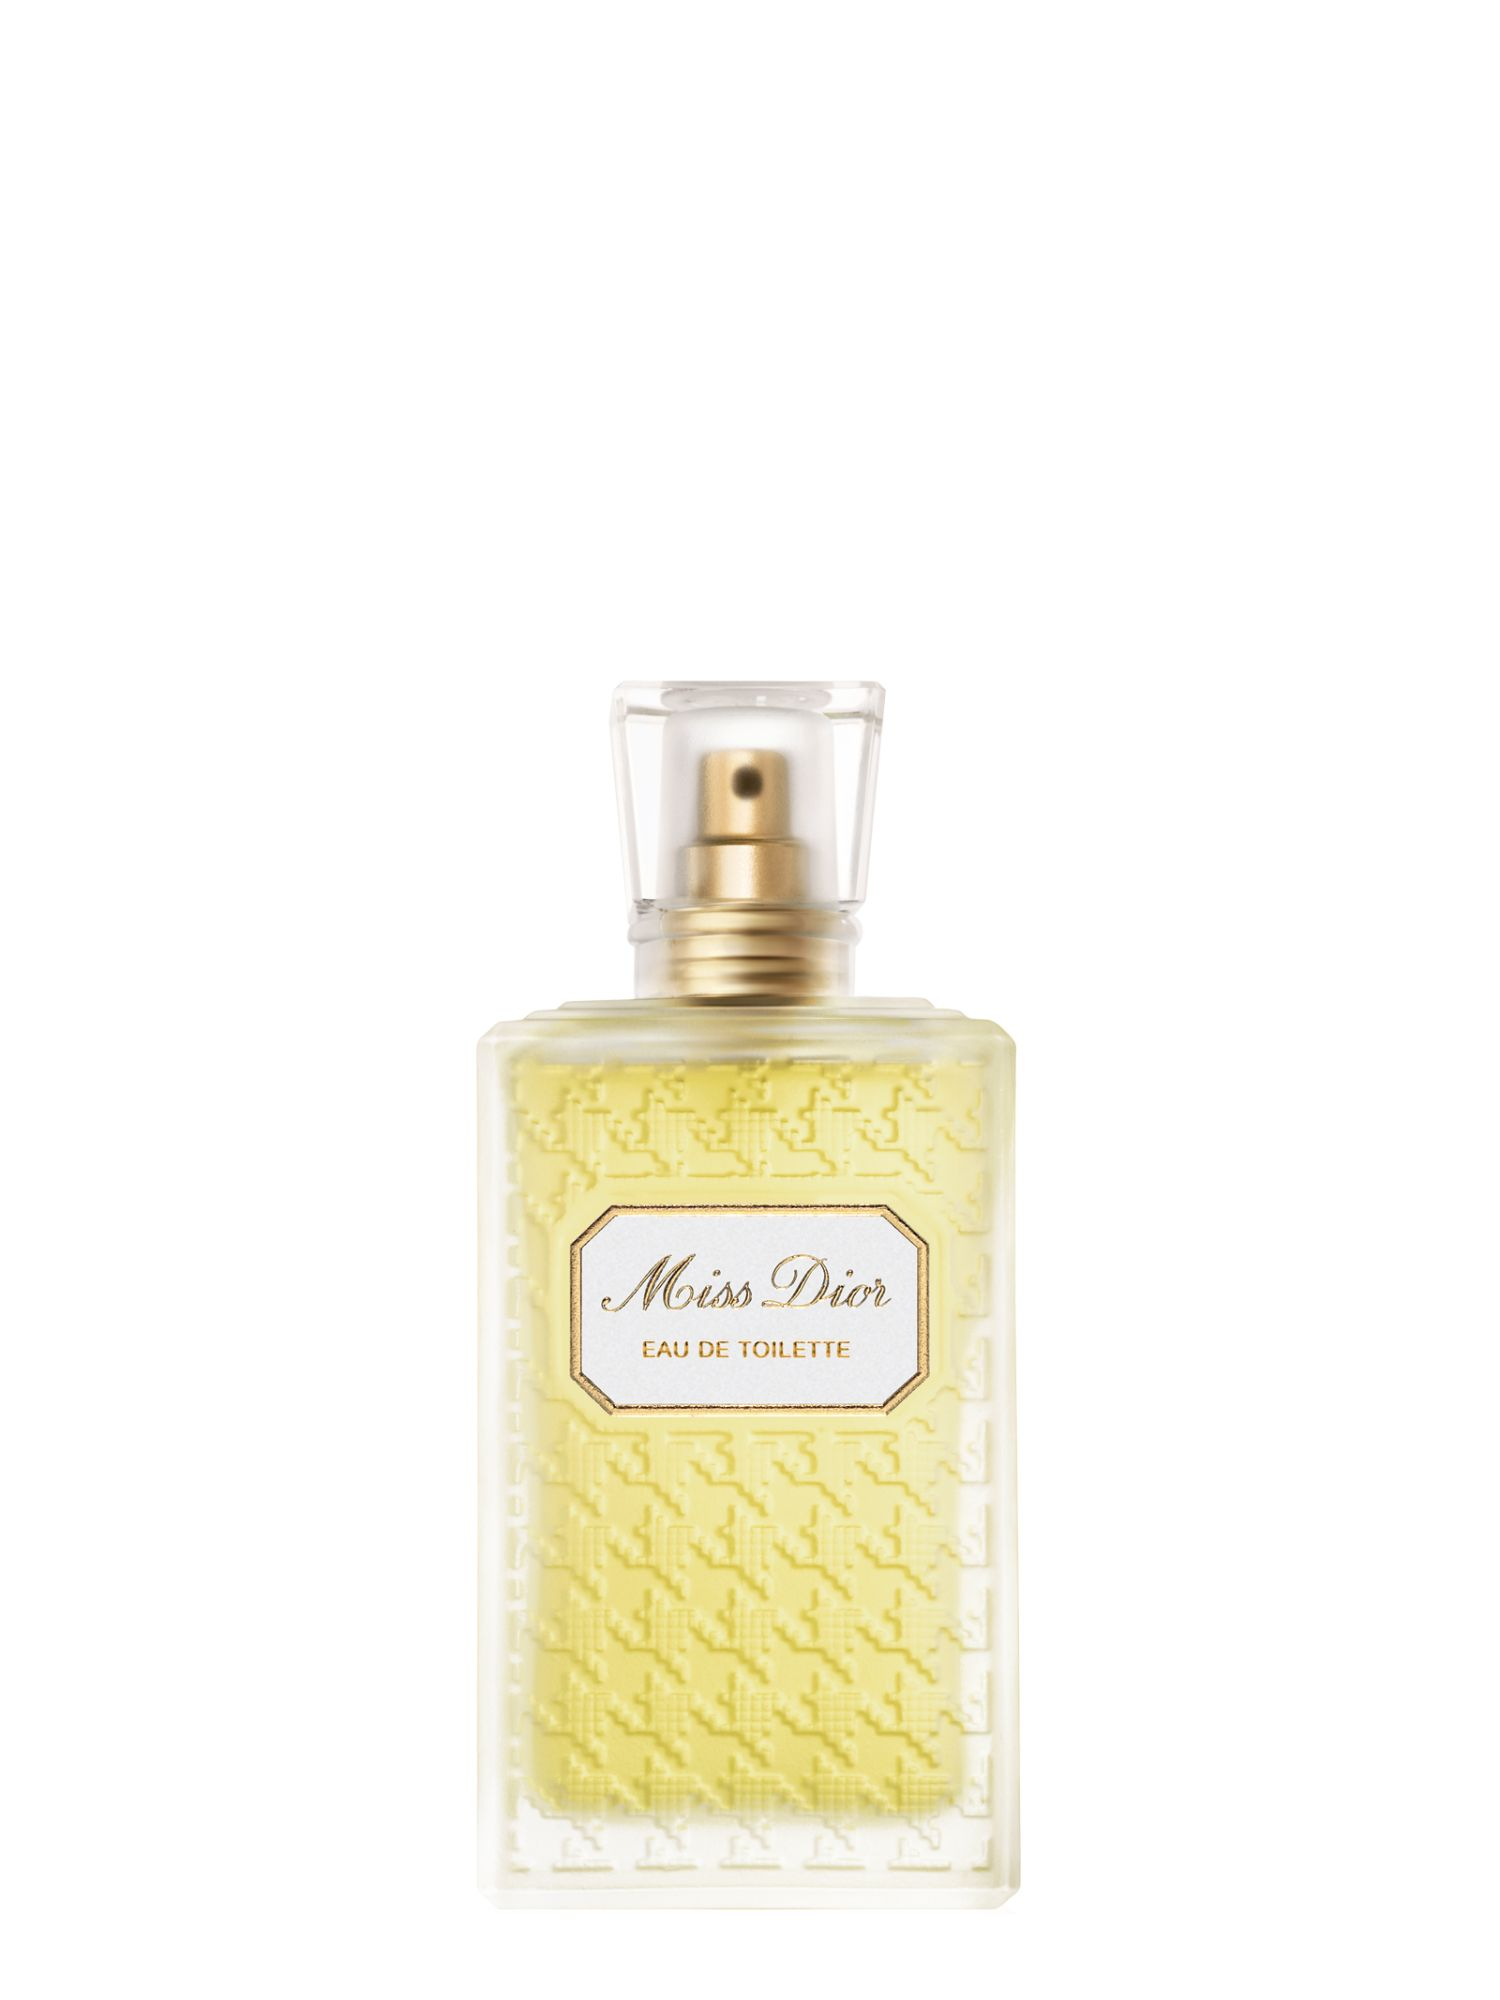 Miss Dior Original Eau de Toilette 100ml